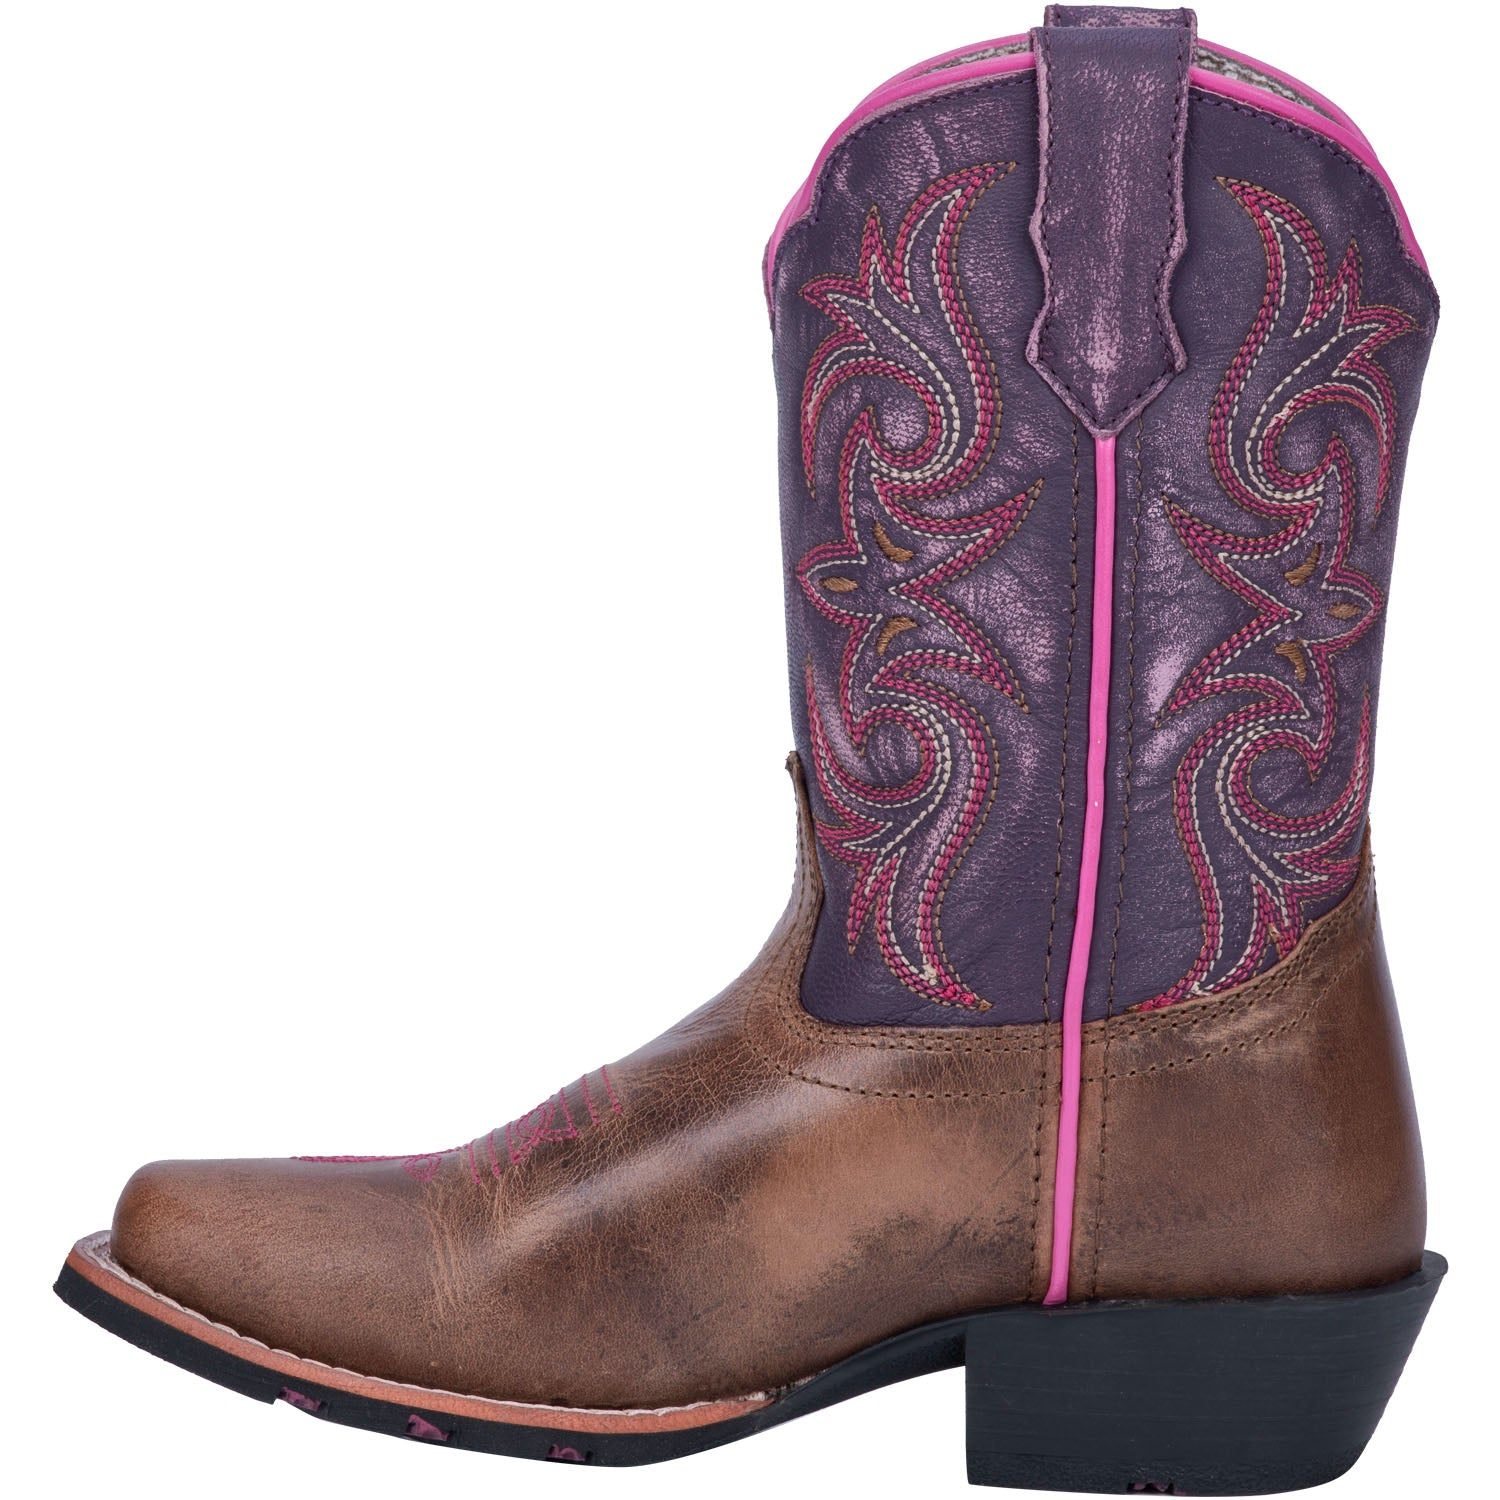 MAJESTY LEATHER YOUTH BOOT 4253900439594